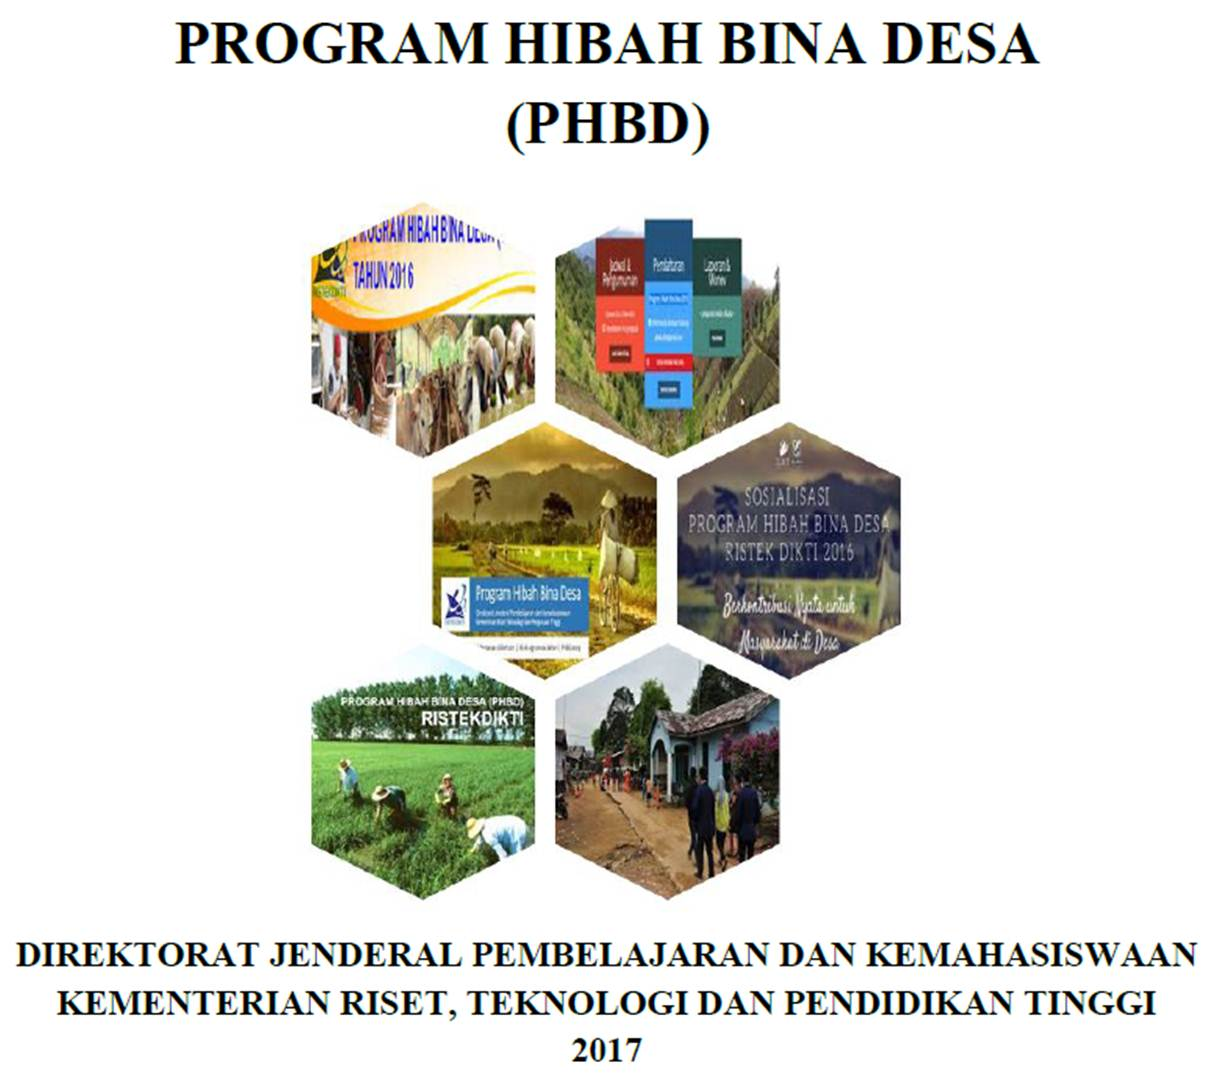 PROGRAM HIBAH BINA DESA  (PHBD) 2017